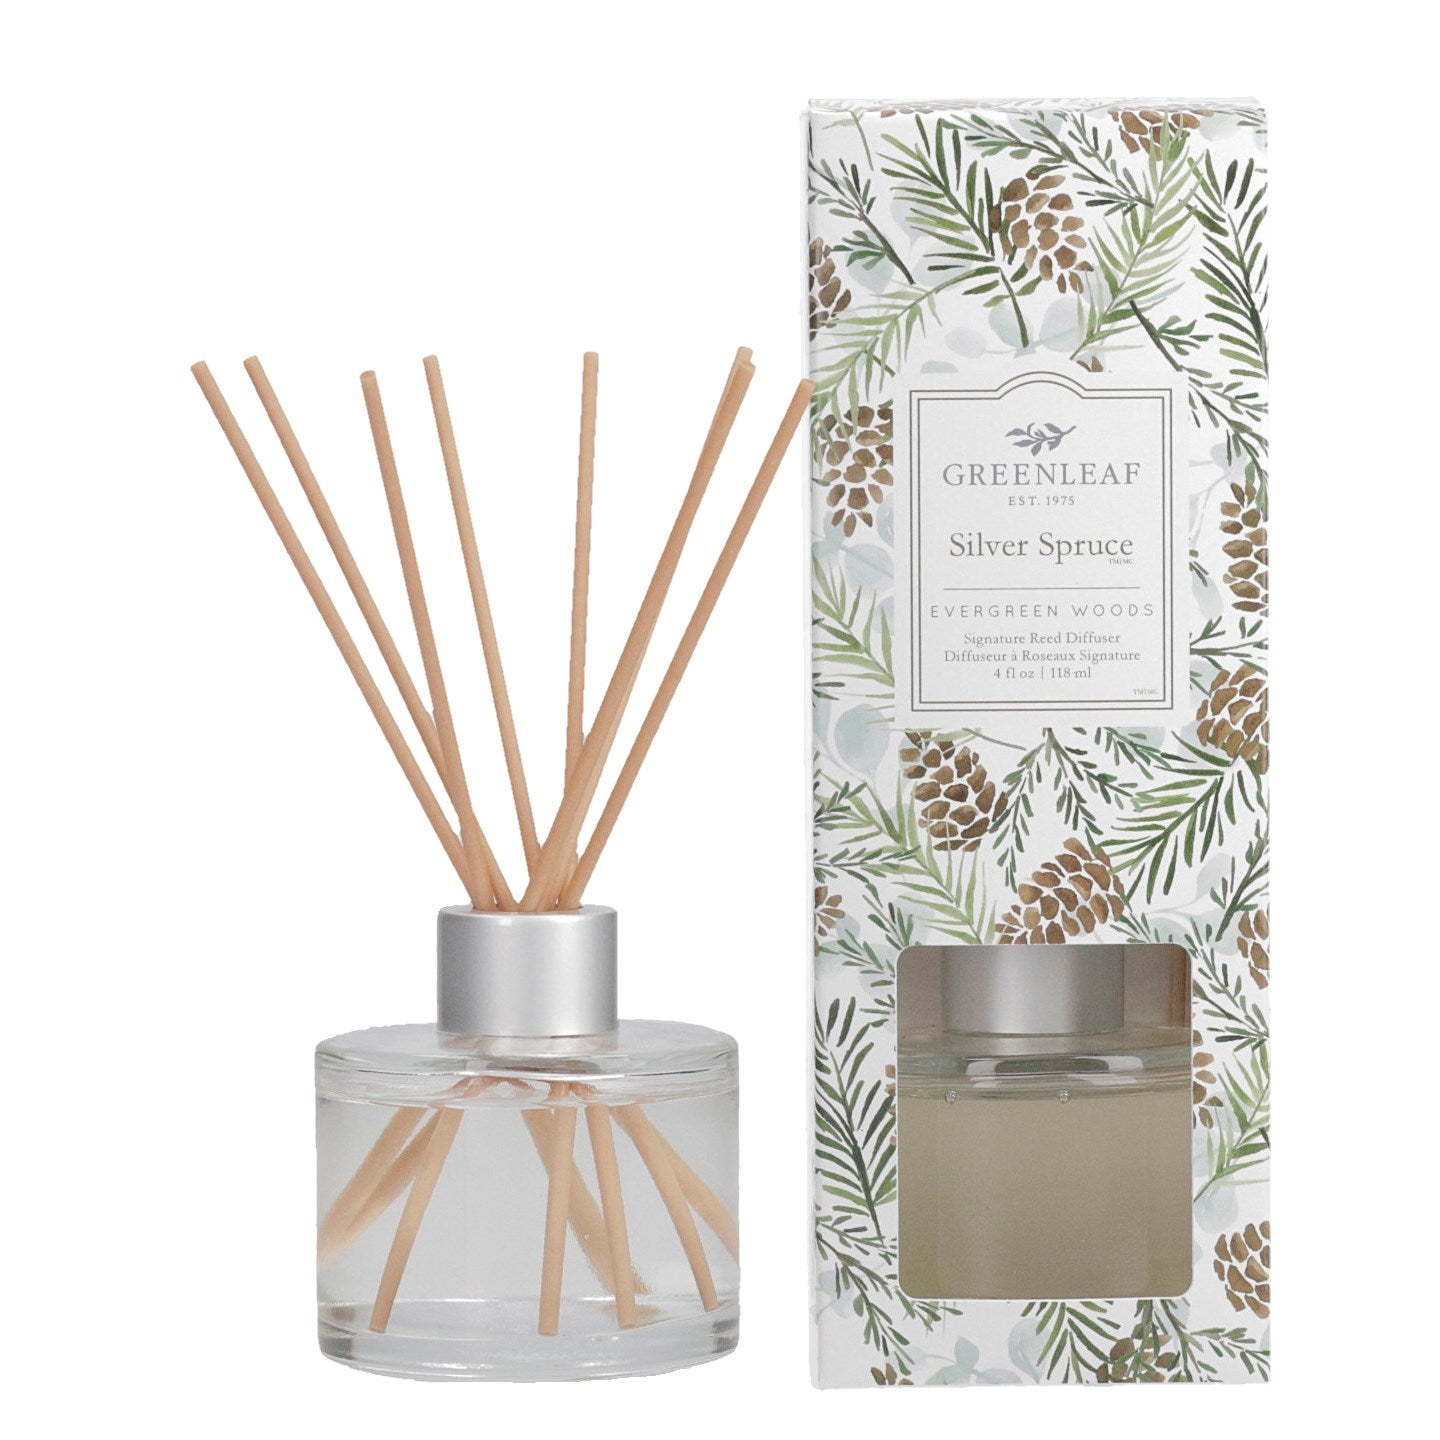 Silver Spruce Reed Diffuser